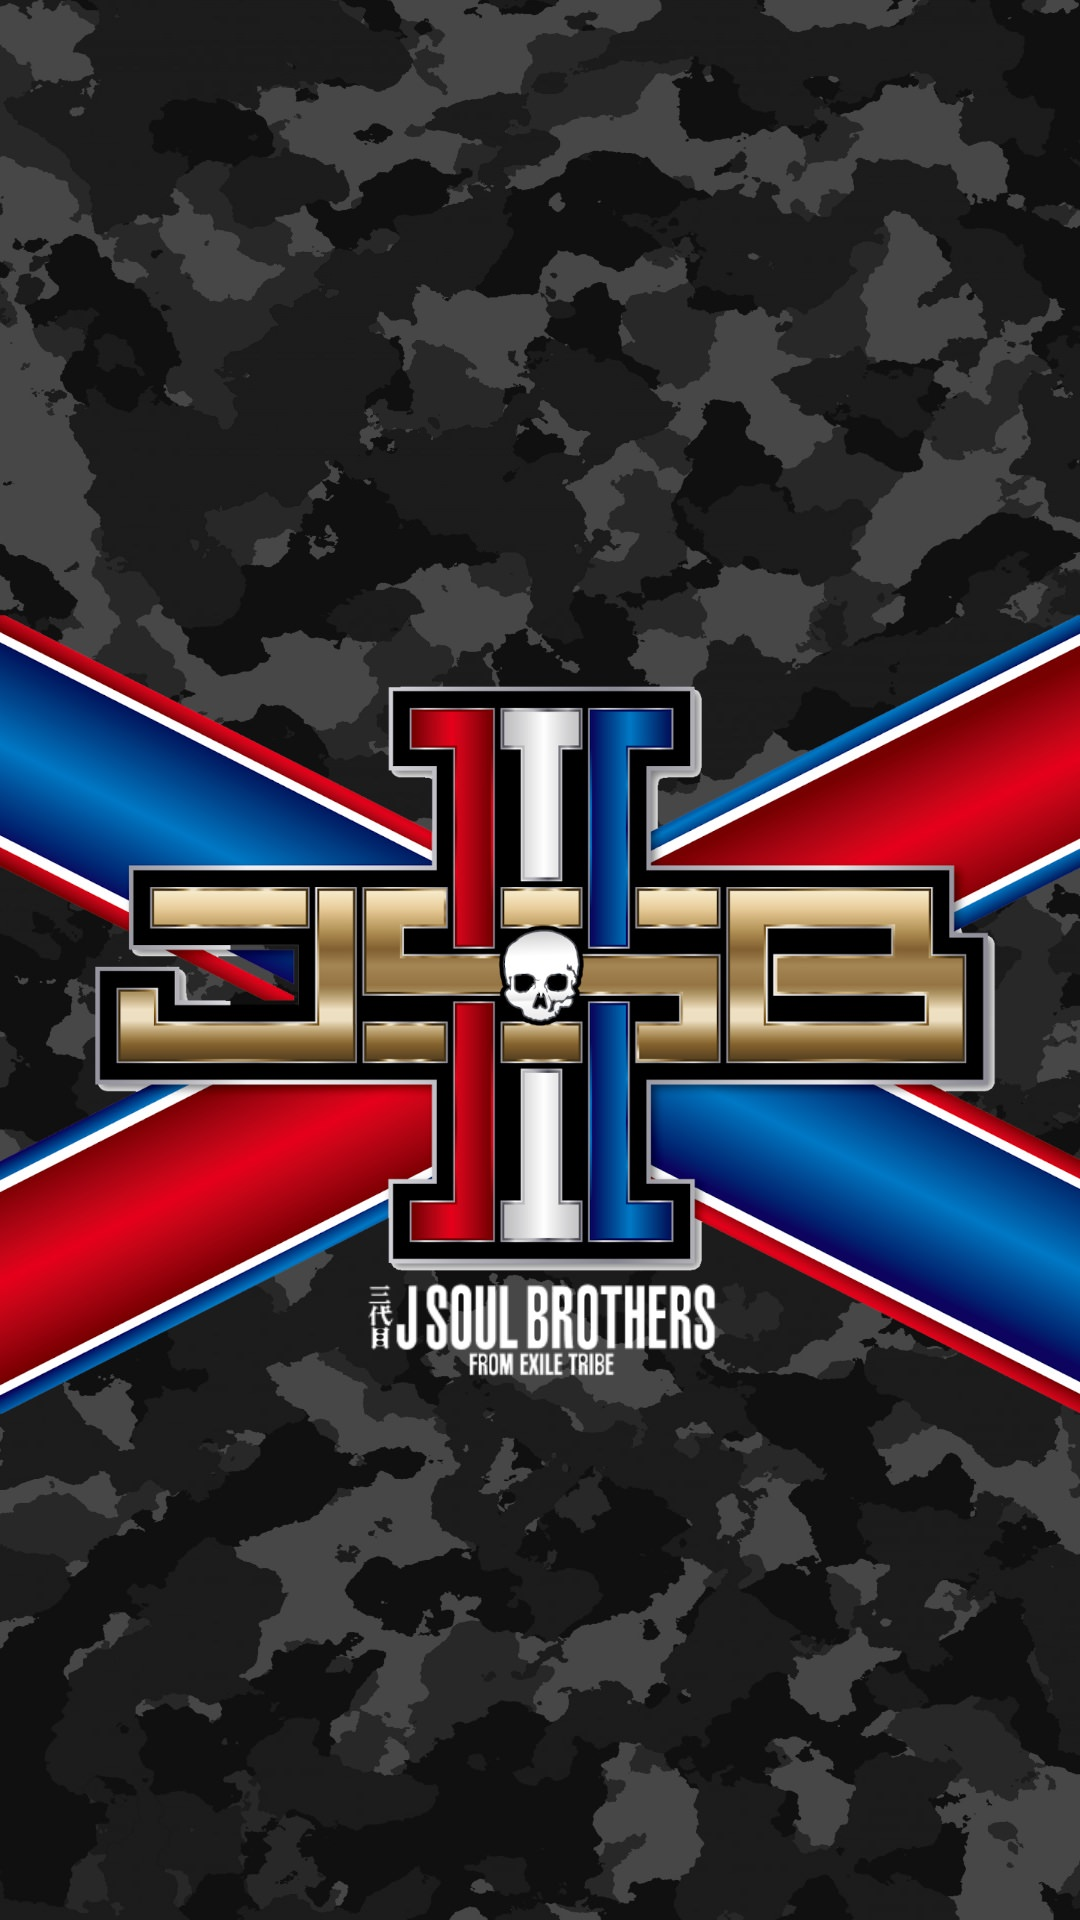 3jsb i40 - 三代目 J SOUL BROTHERSの高画質スマホ壁紙40枚 [iPhone&Androidに対応]